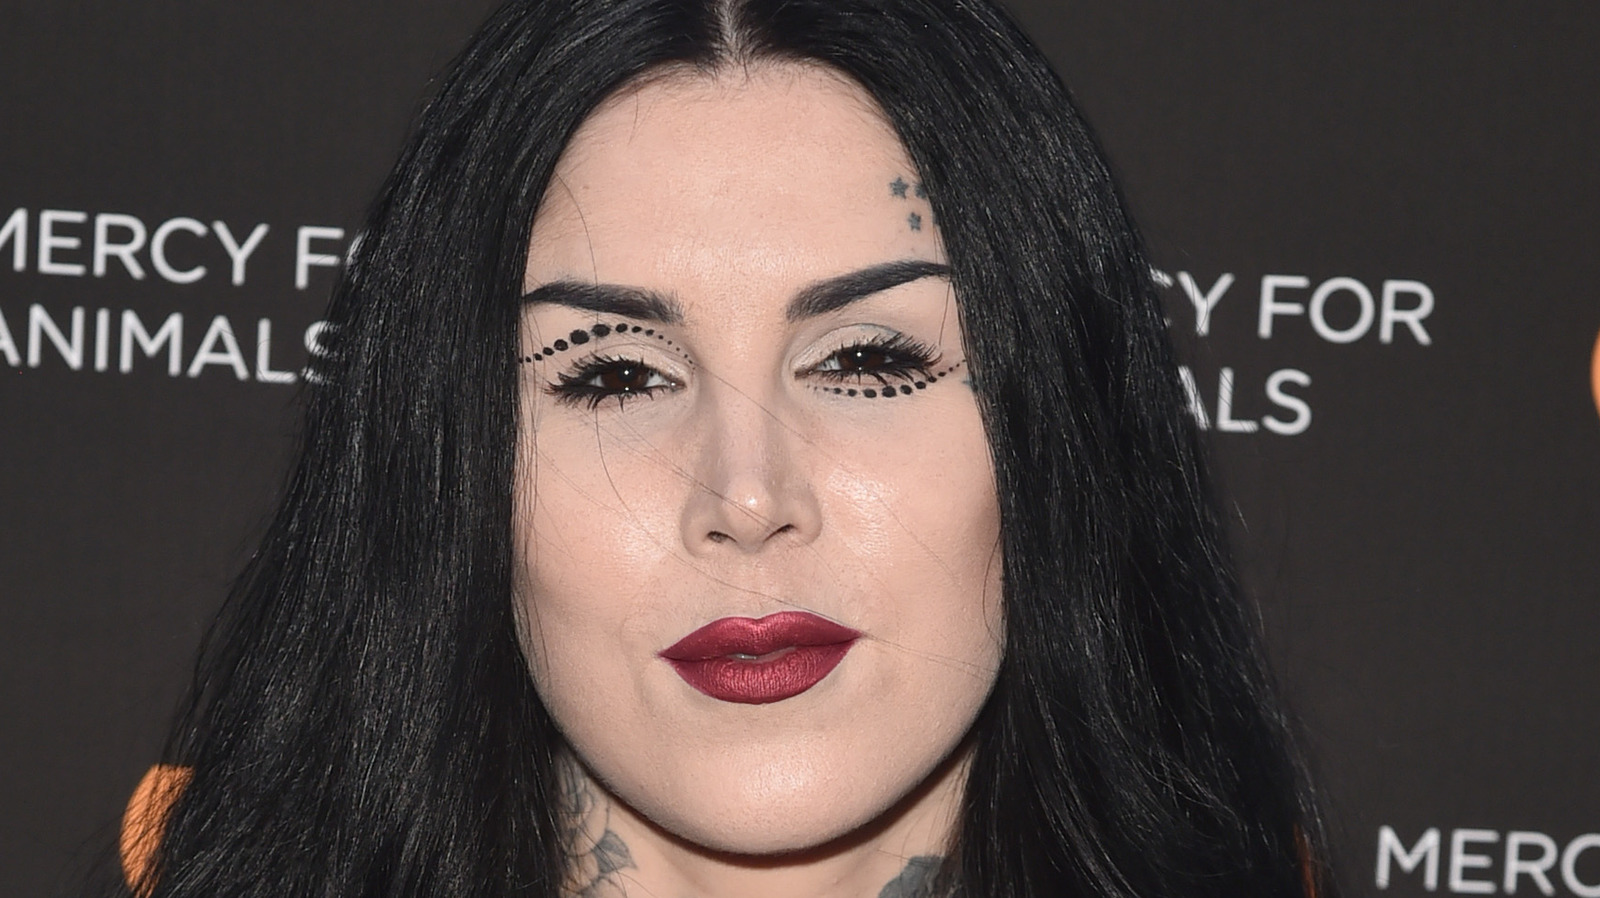 The unsaid Reason Kat Von D Moved To Indiana